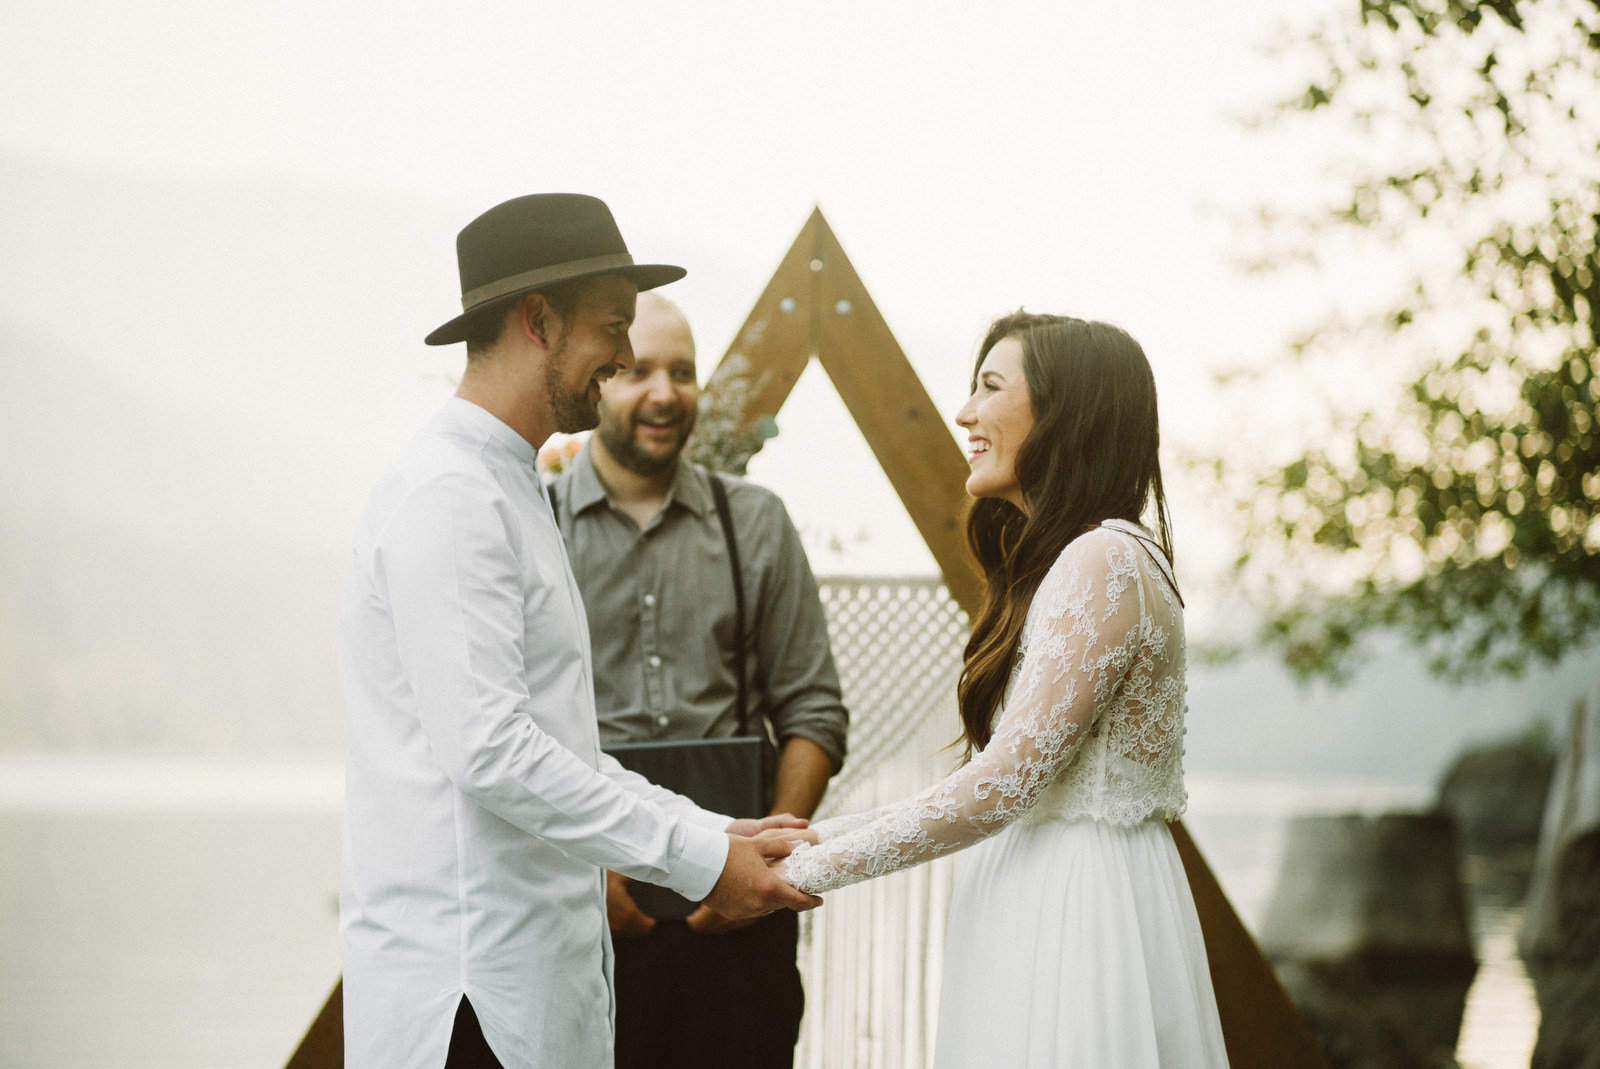 athena-and-camron-seattle-elopement-wedding-benj-haisch-rattlesnake-lake-christian-couple-goals40